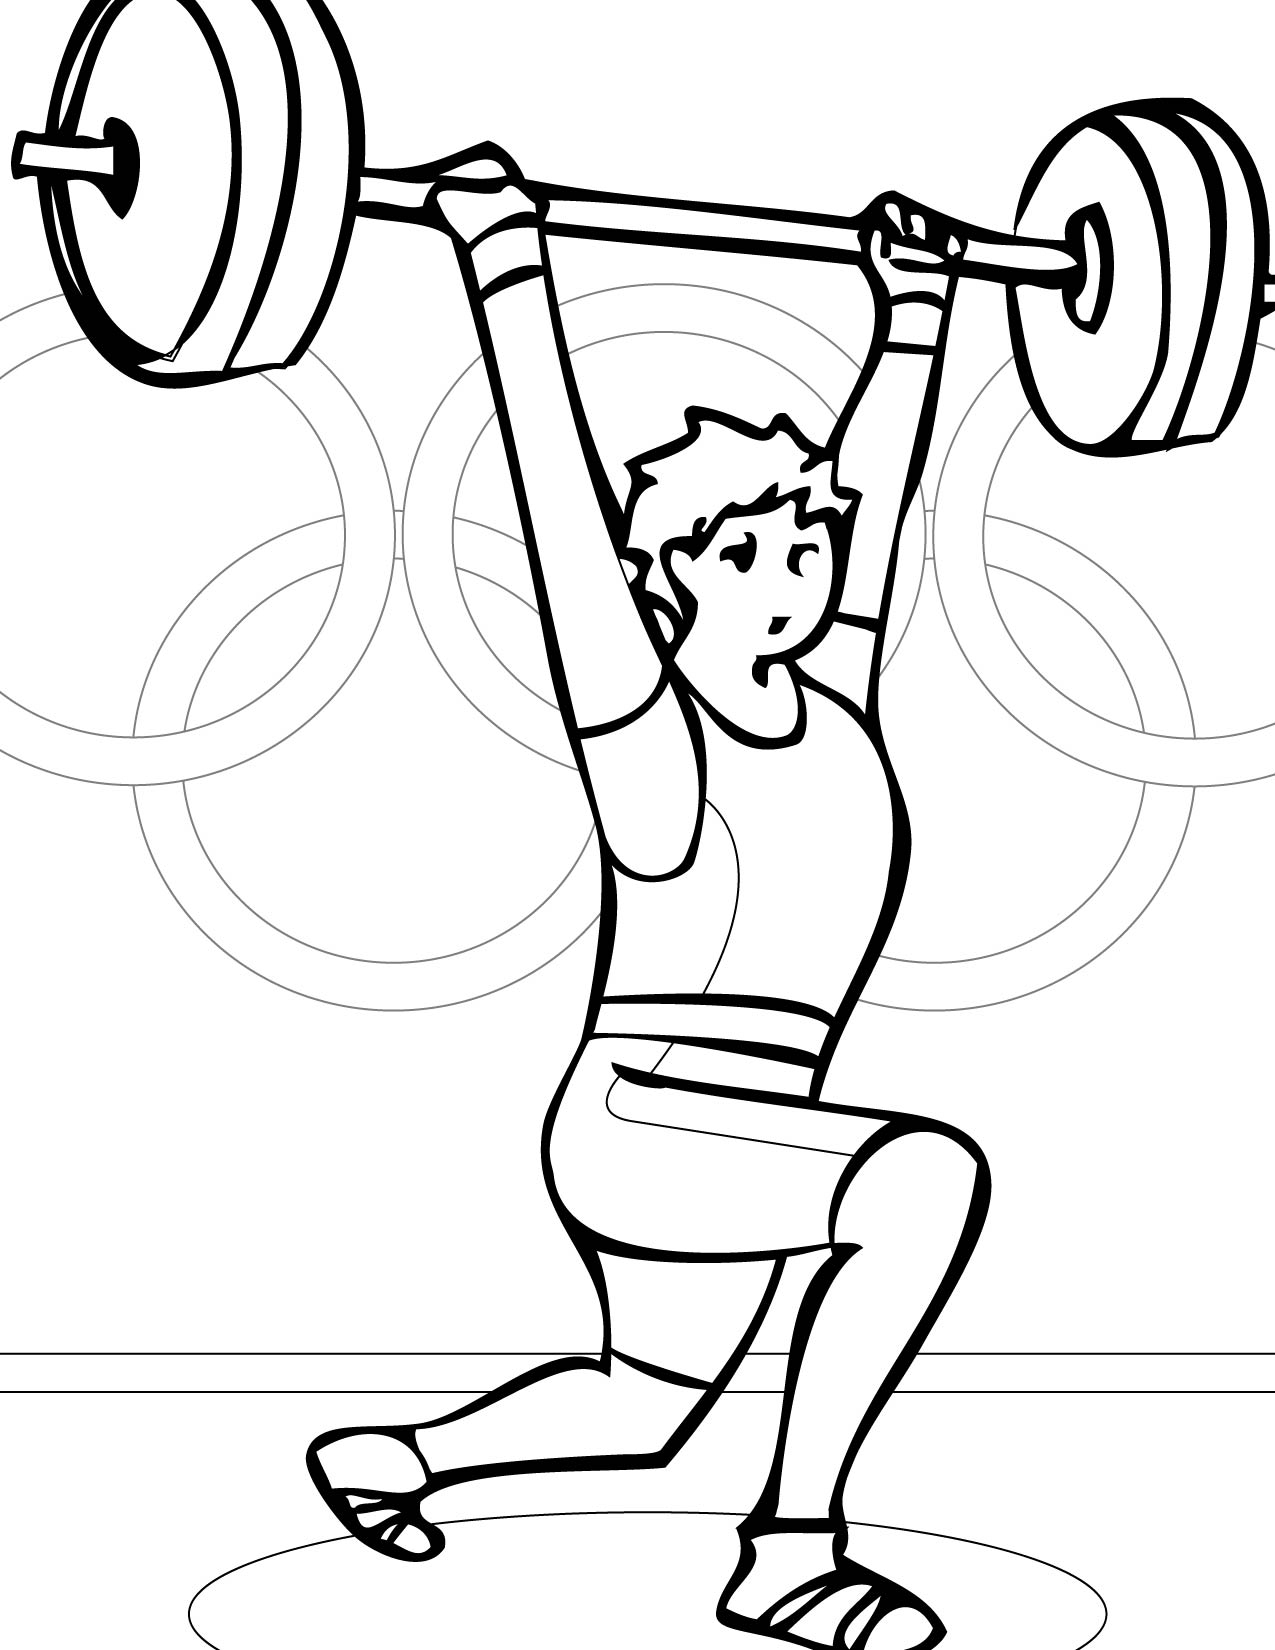 Olympic Medal Coloring Page Sketch Coloring Page